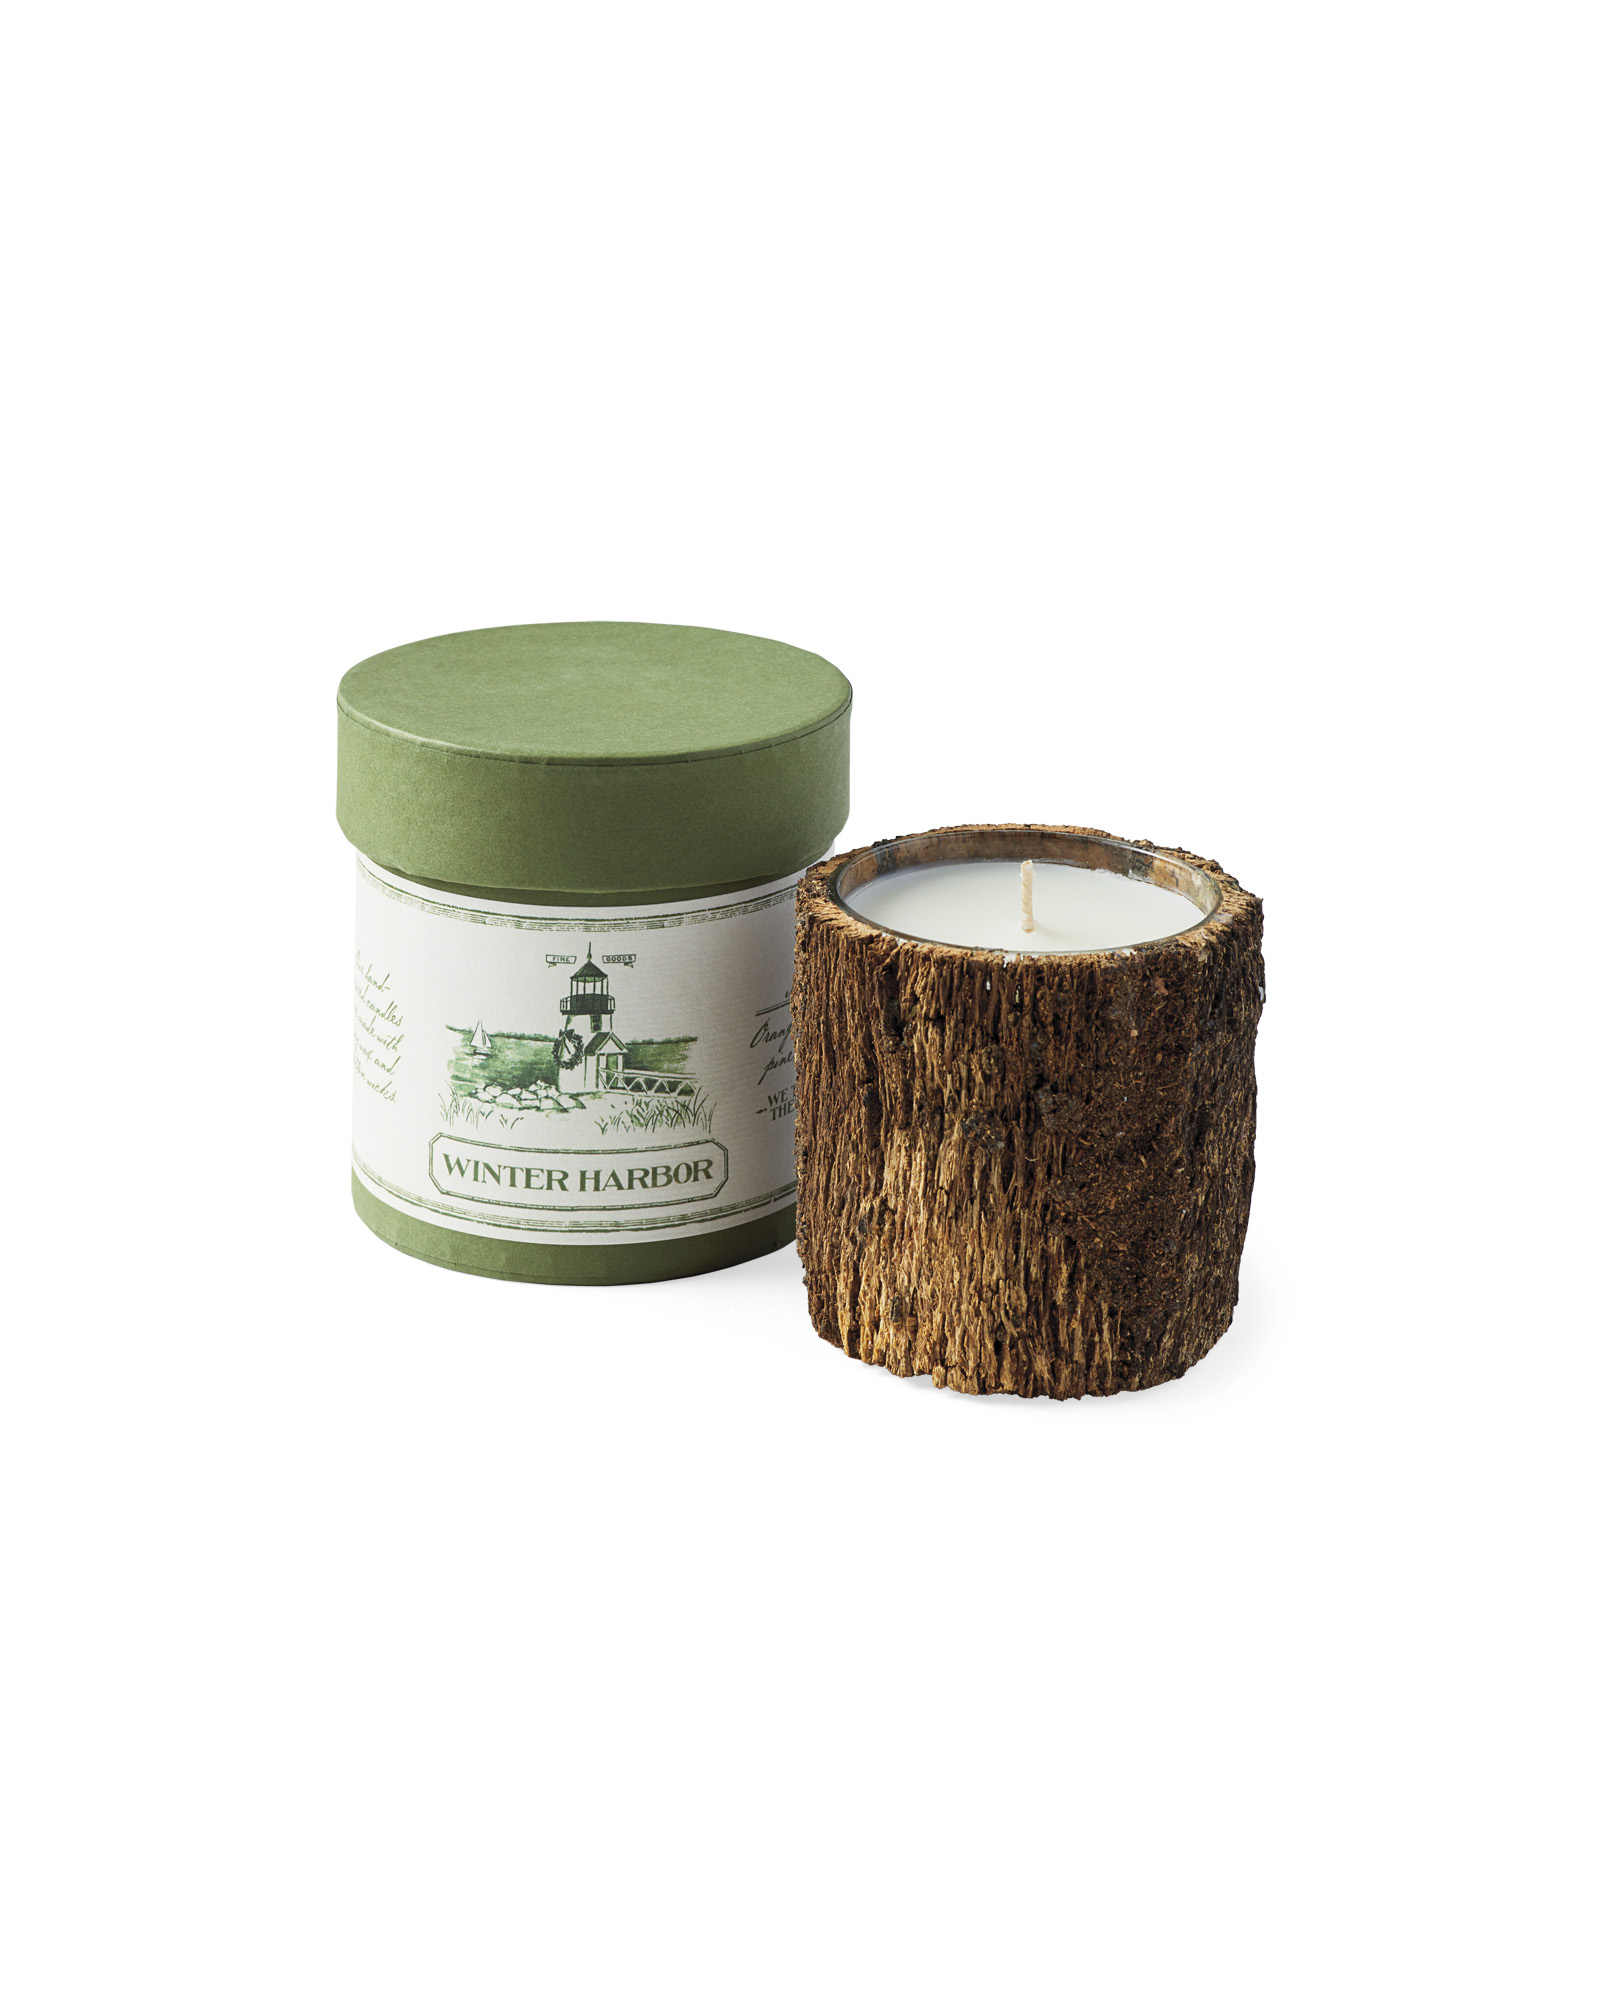 Winter Harbor Bark Candle,